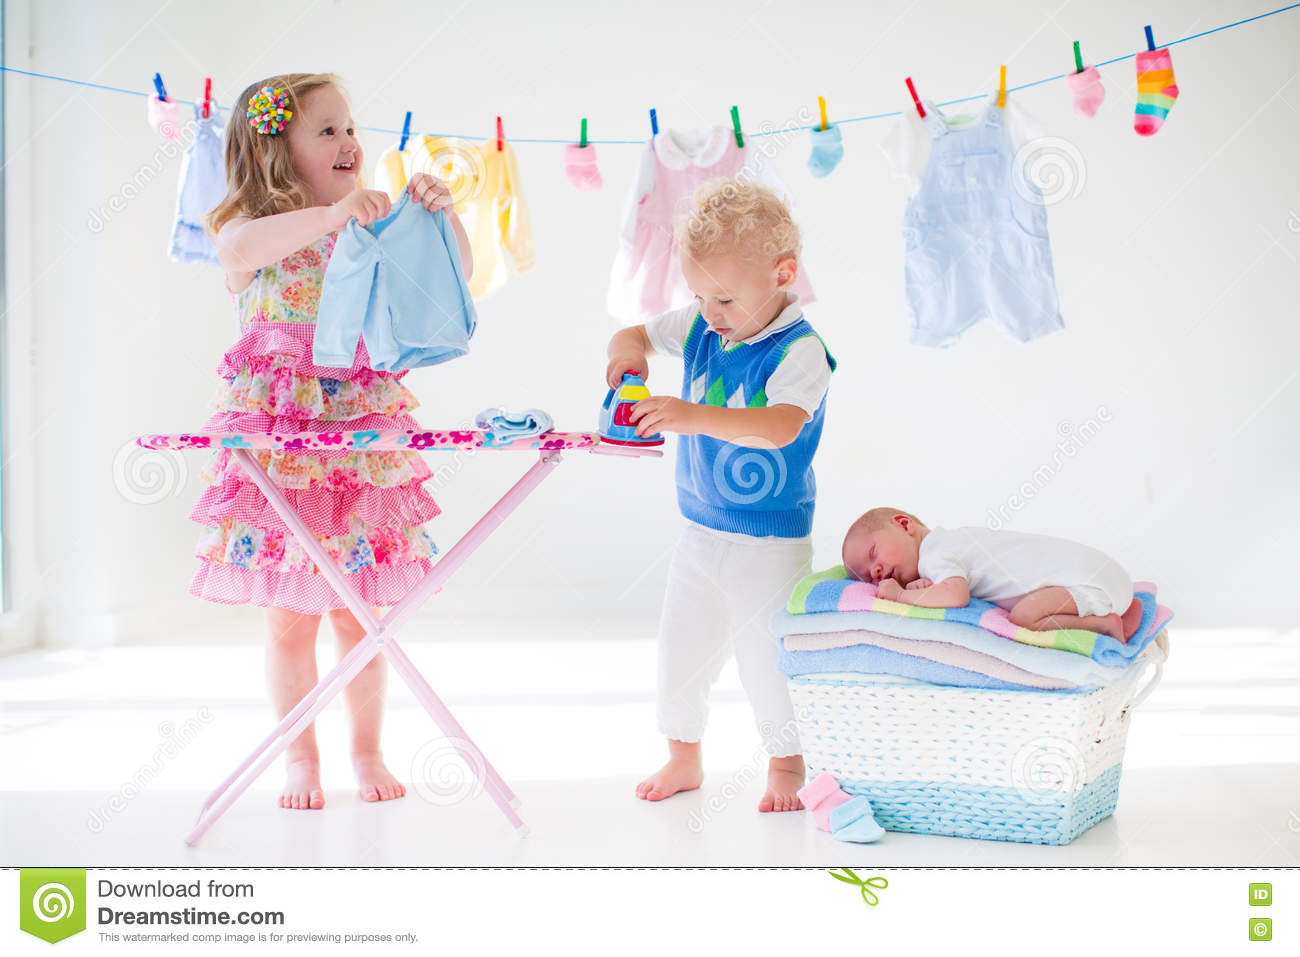 kids ironing clothes for baby brother royaltyfree stock